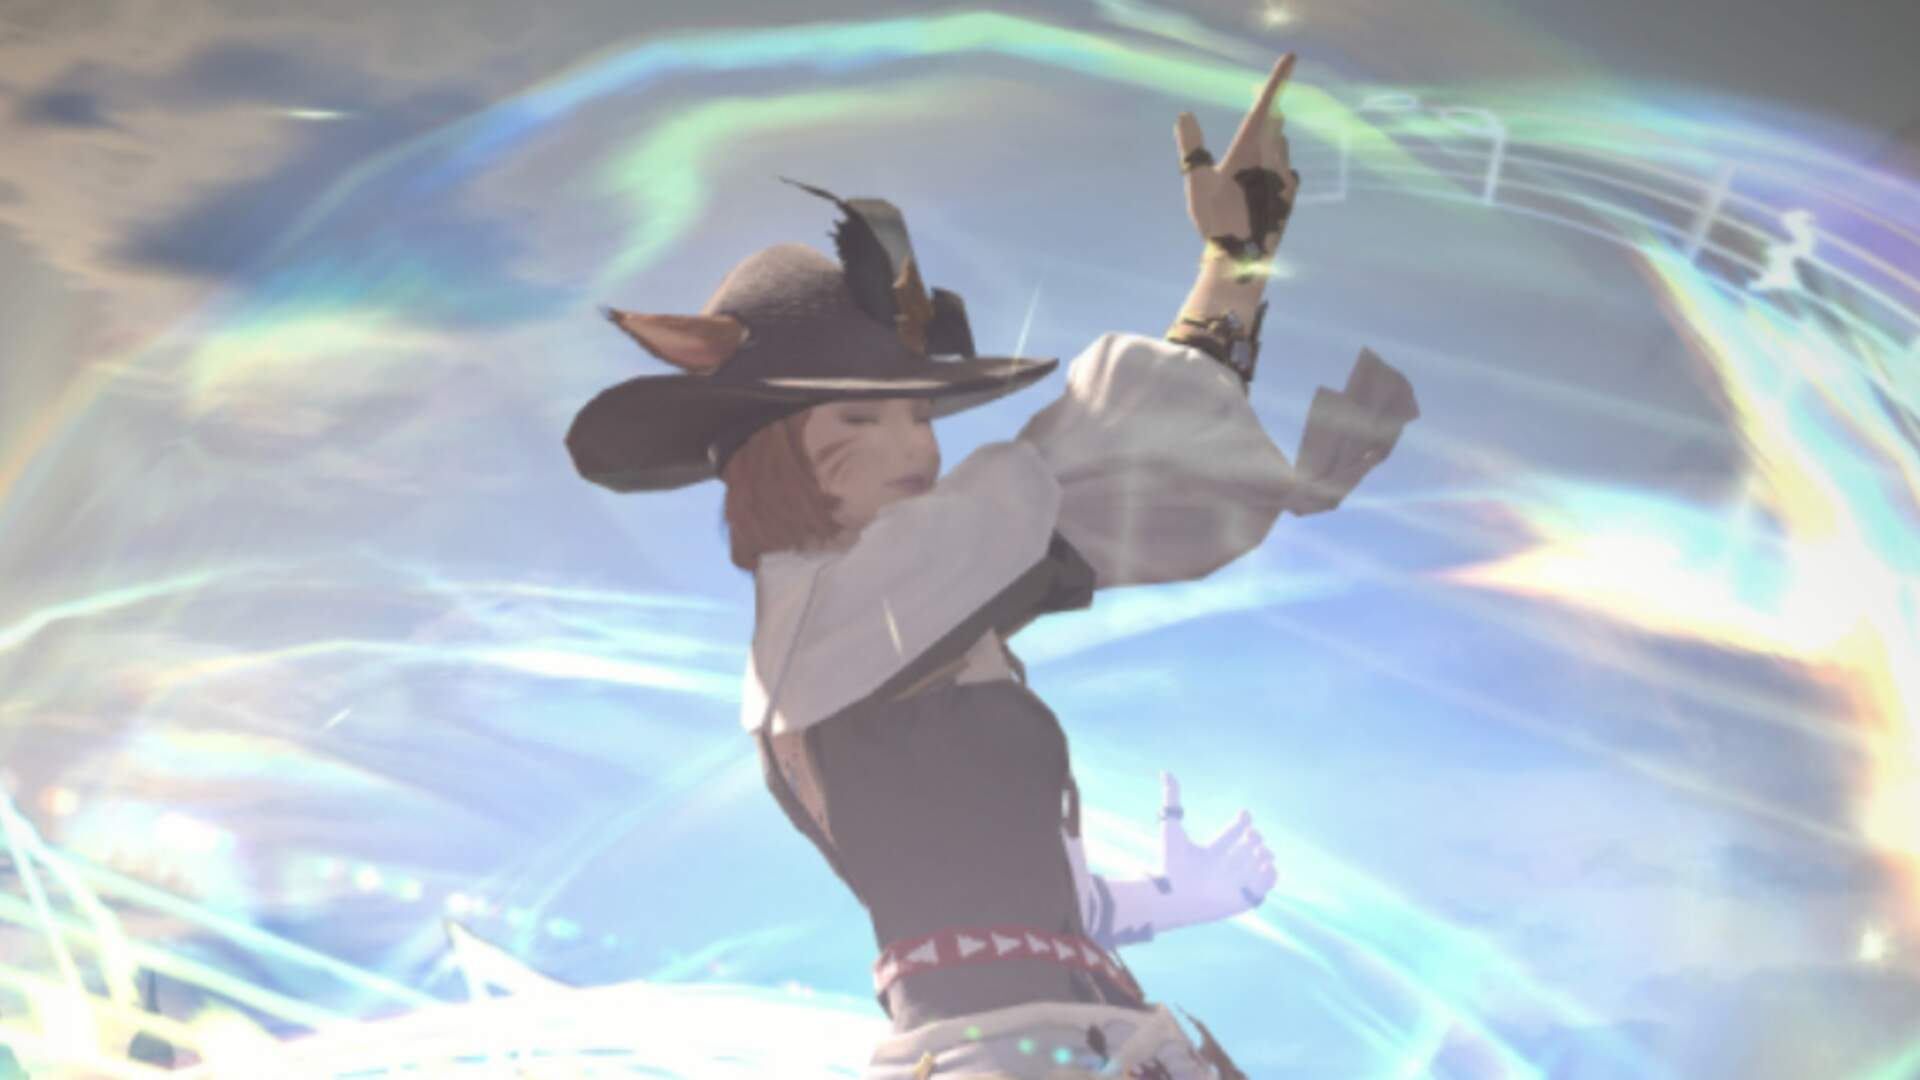 Final Fantasy XIV Bards are Already Covering Hit Songs Thanks to the New Update